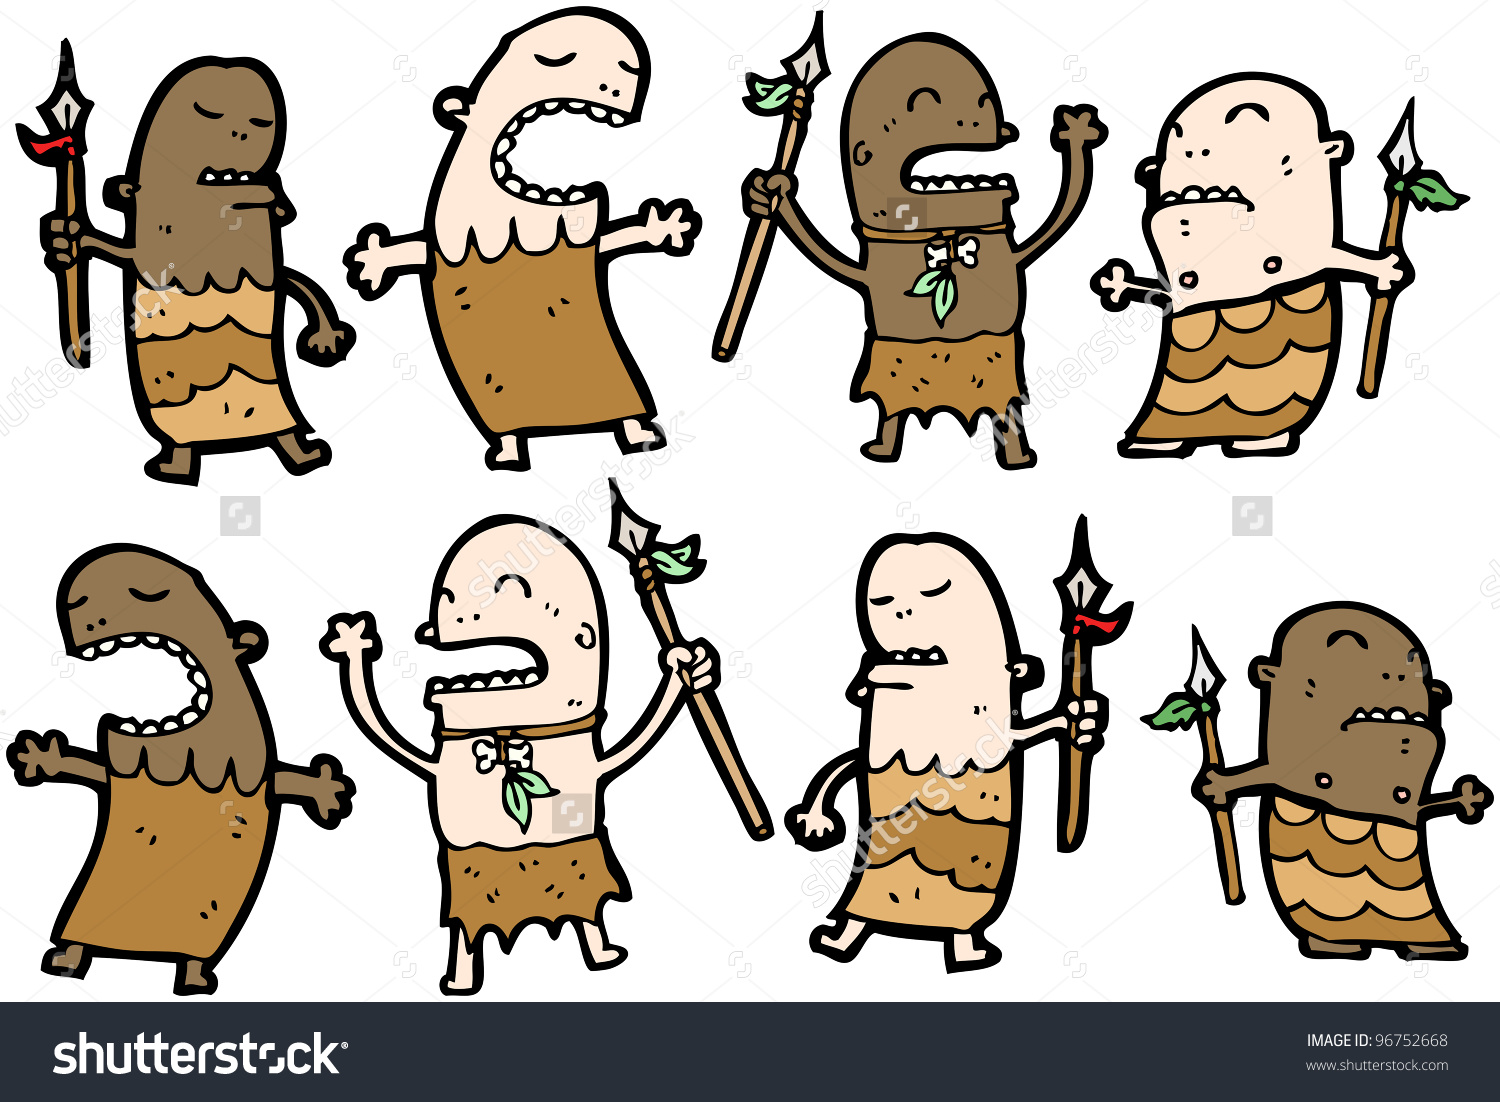 Cartoon Tribesmen Stock Photo 96752668 : Shutterstock.